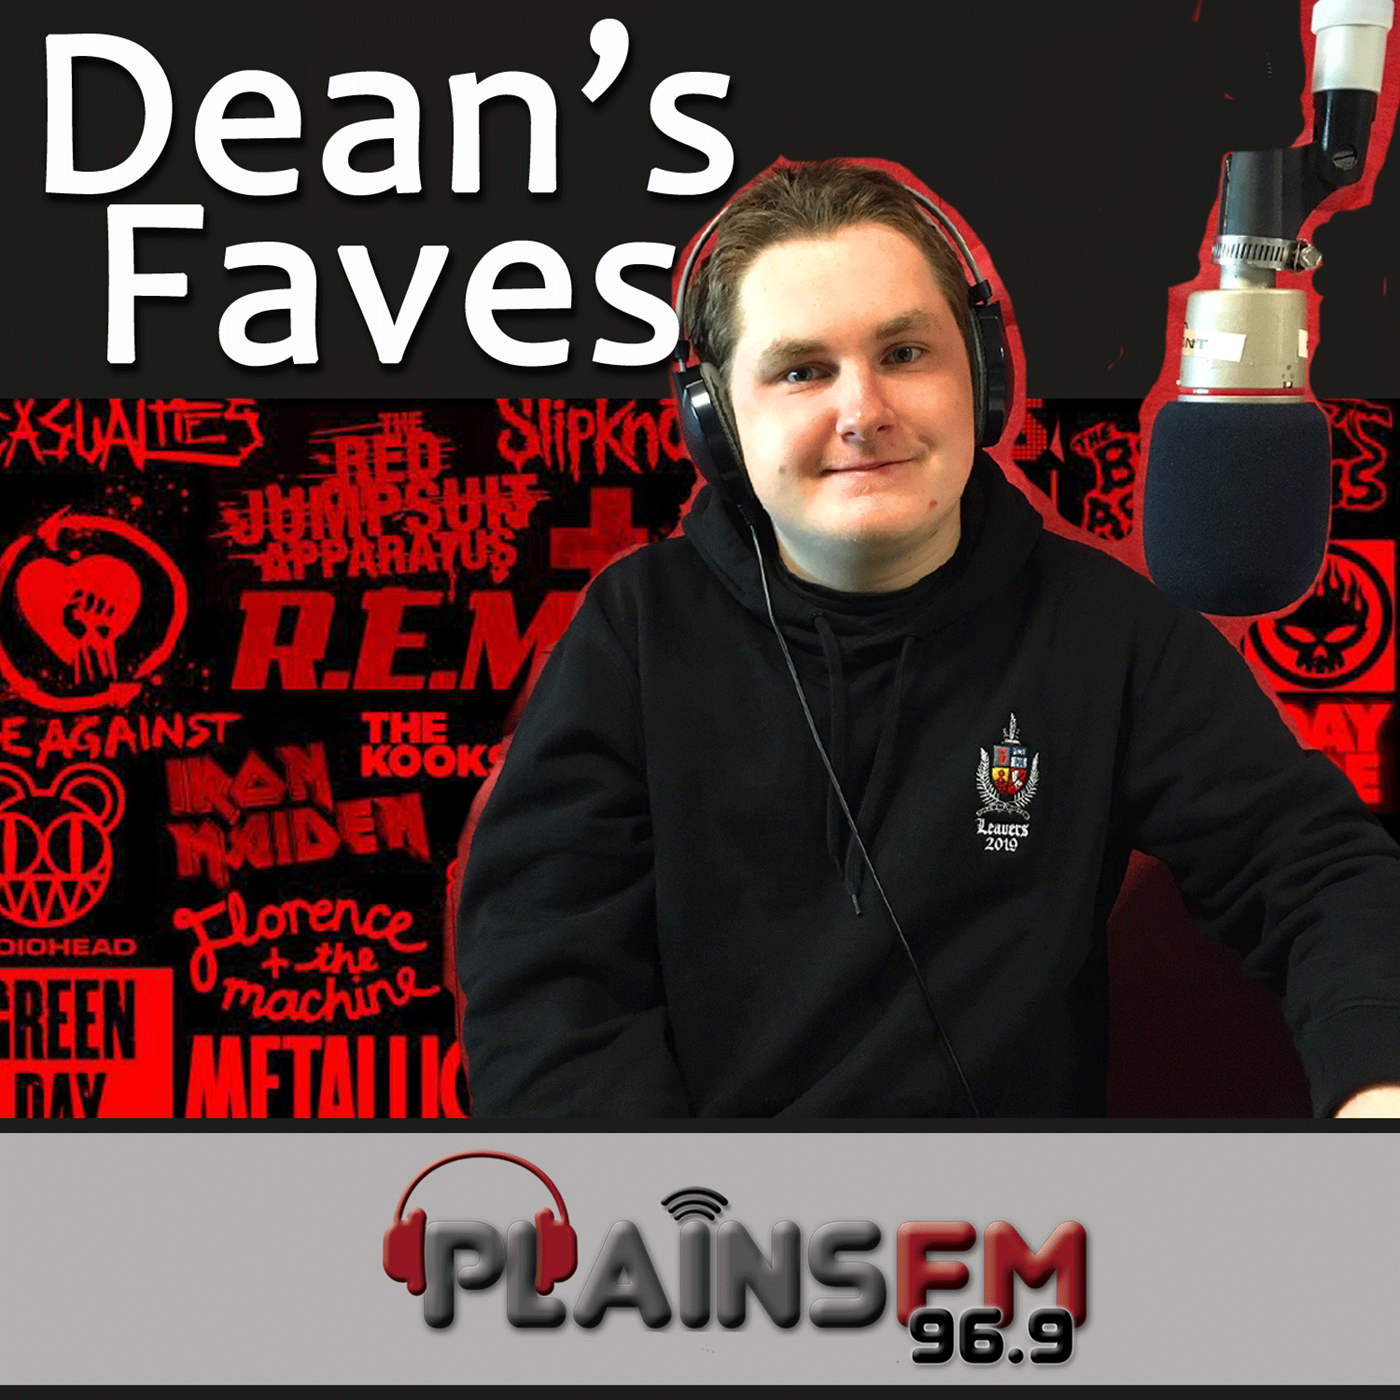 Dean's Faves - Episode 22